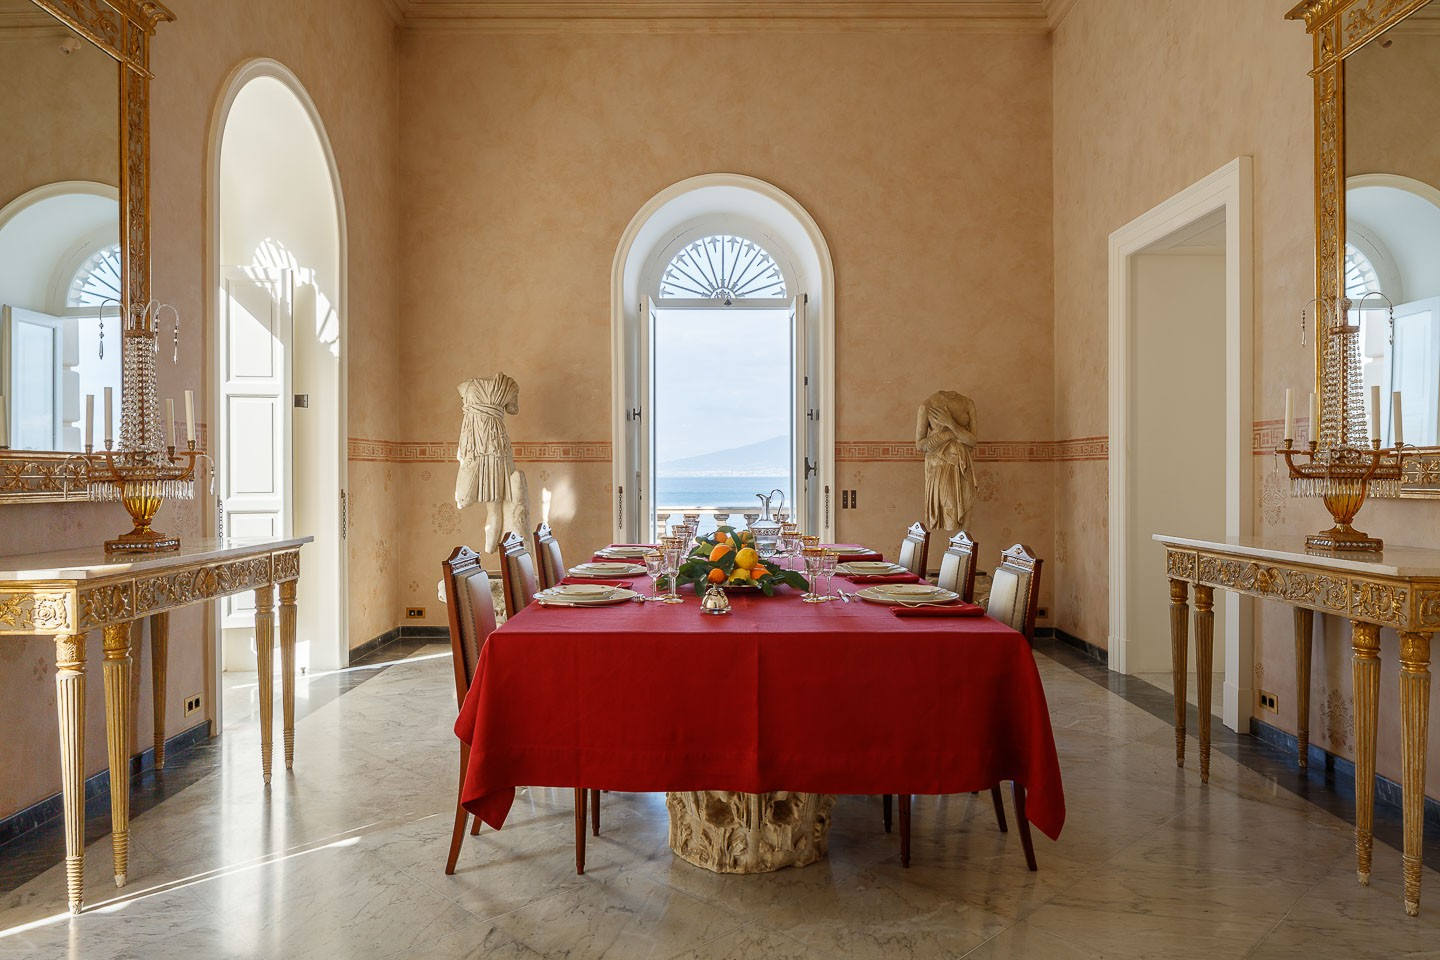 Villa Astor luxury property available for exclusive rent rental destination ices accommodation best dining room table settings The Heritage Collection